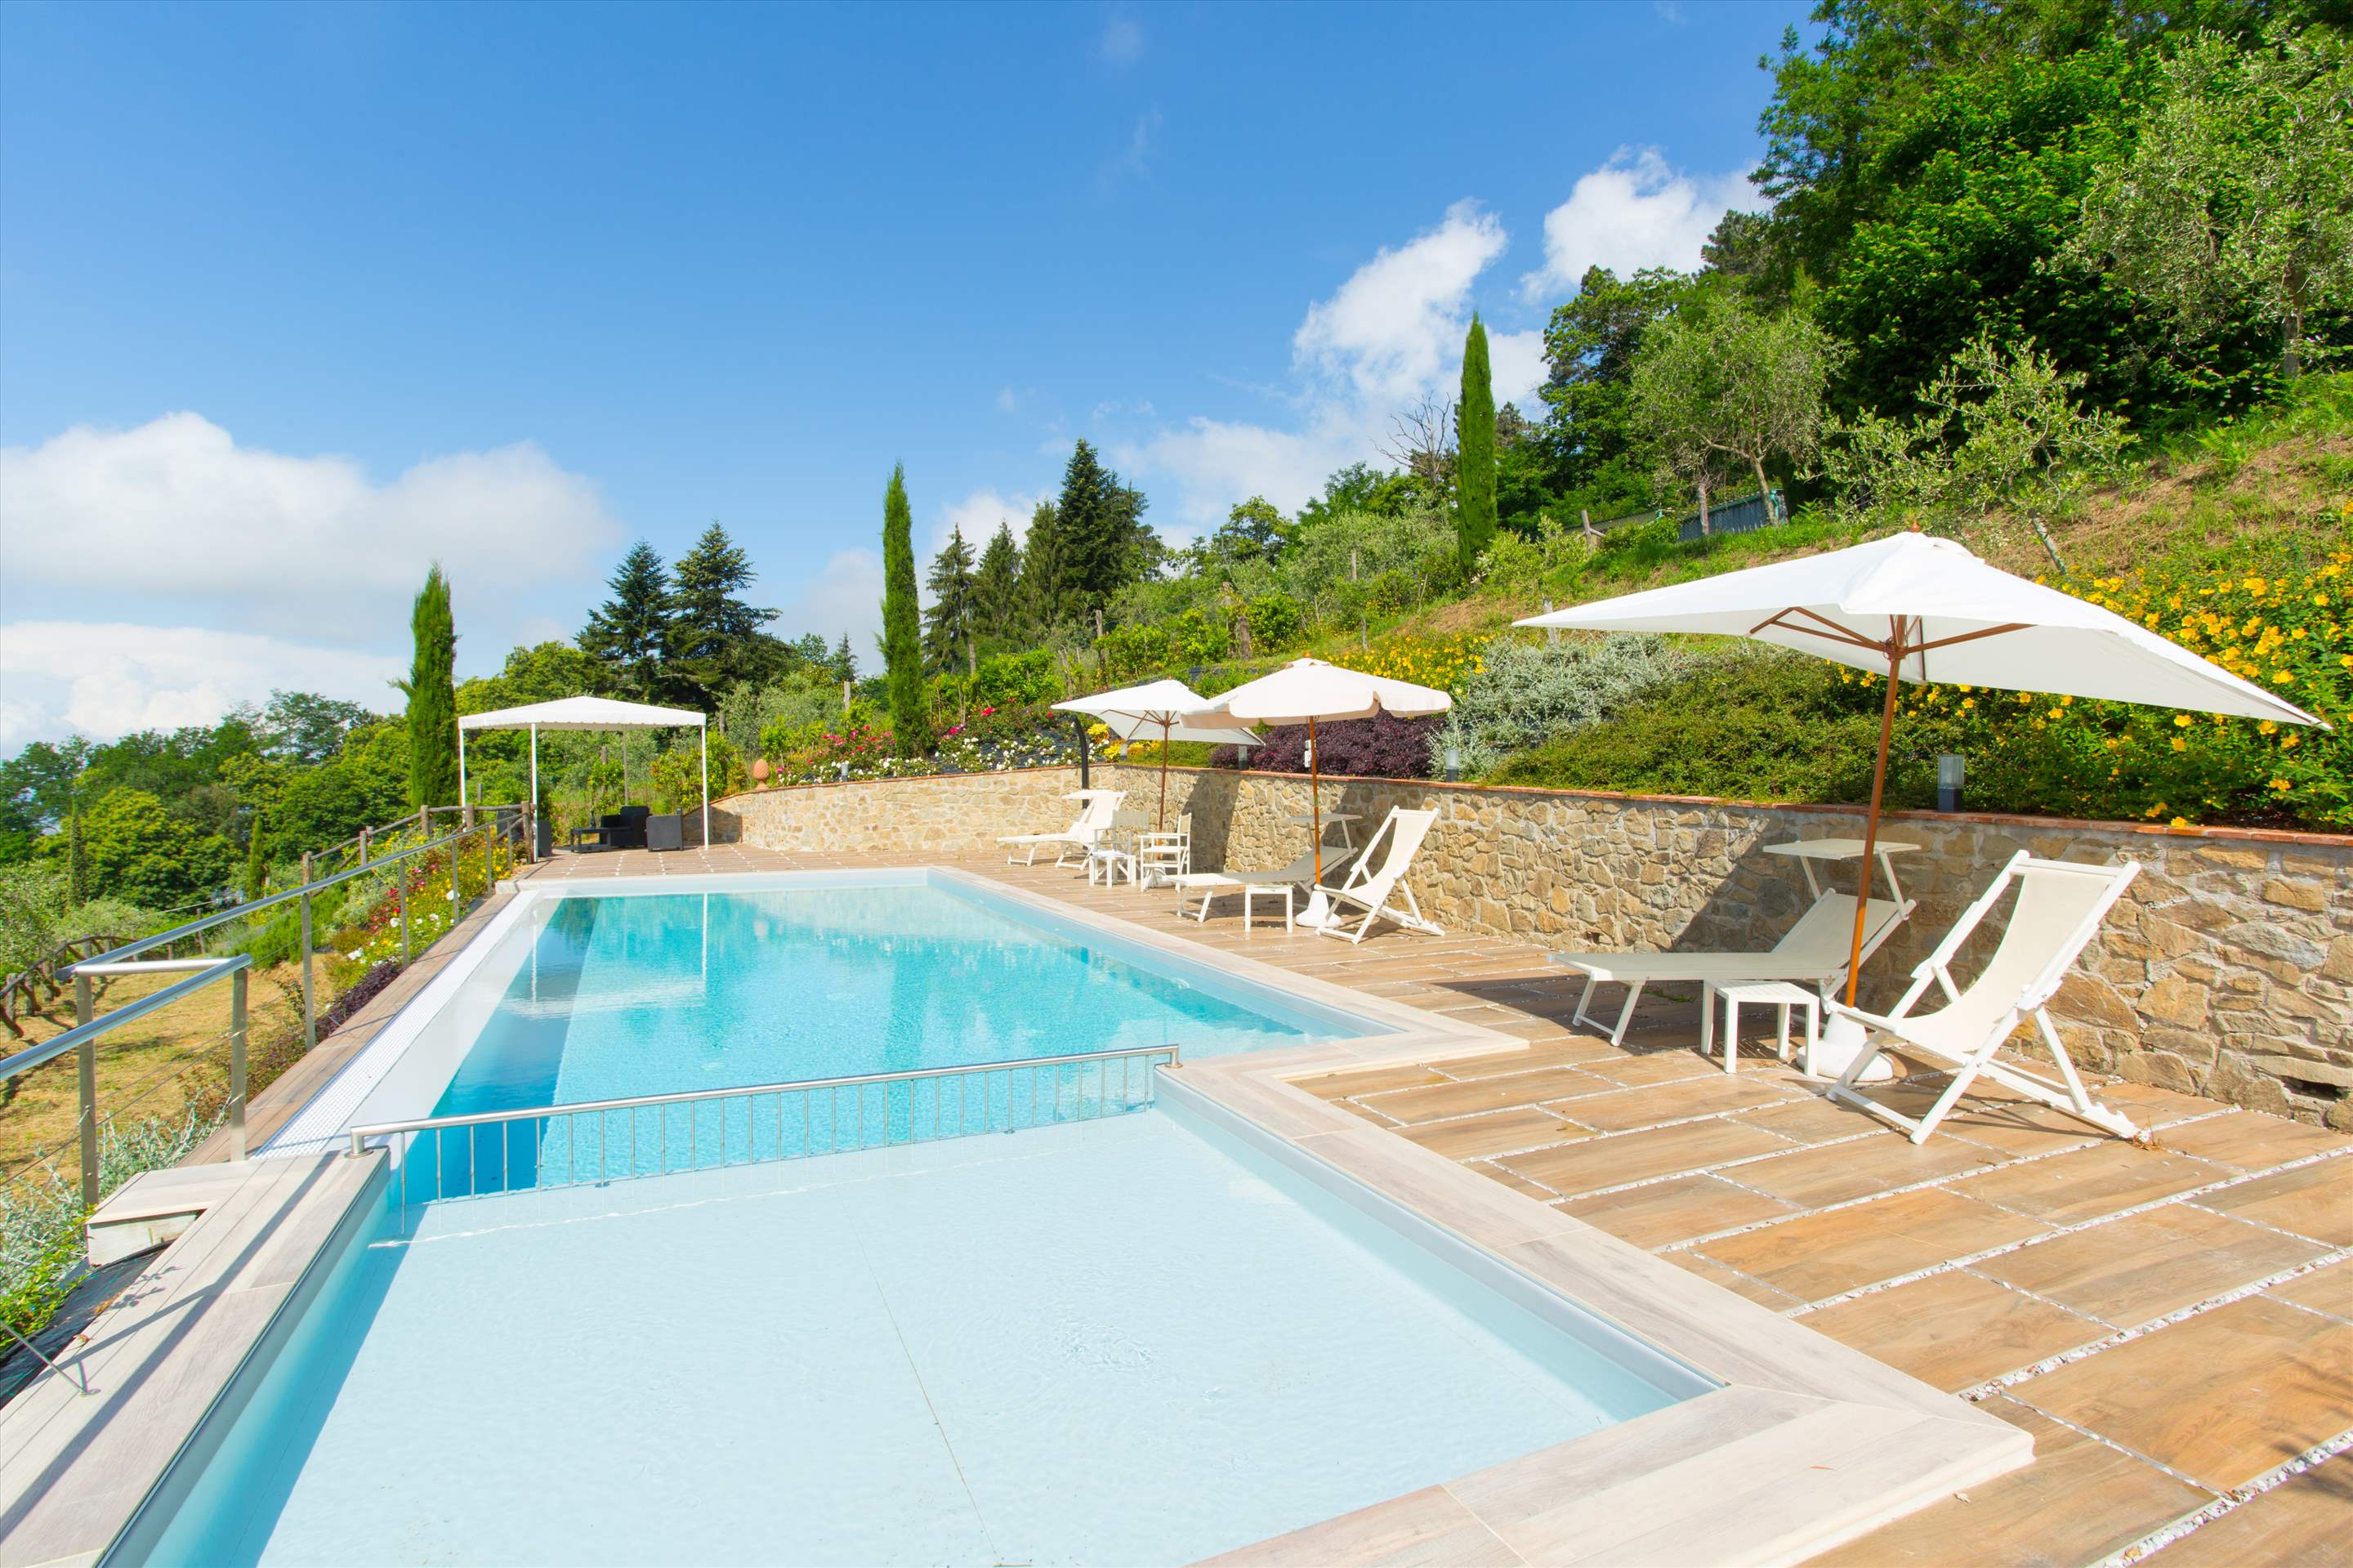 Villa Panorama, 3 bedroom villa in North Tuscany - Pisa & Lucca Area, Tuscany Photo #12